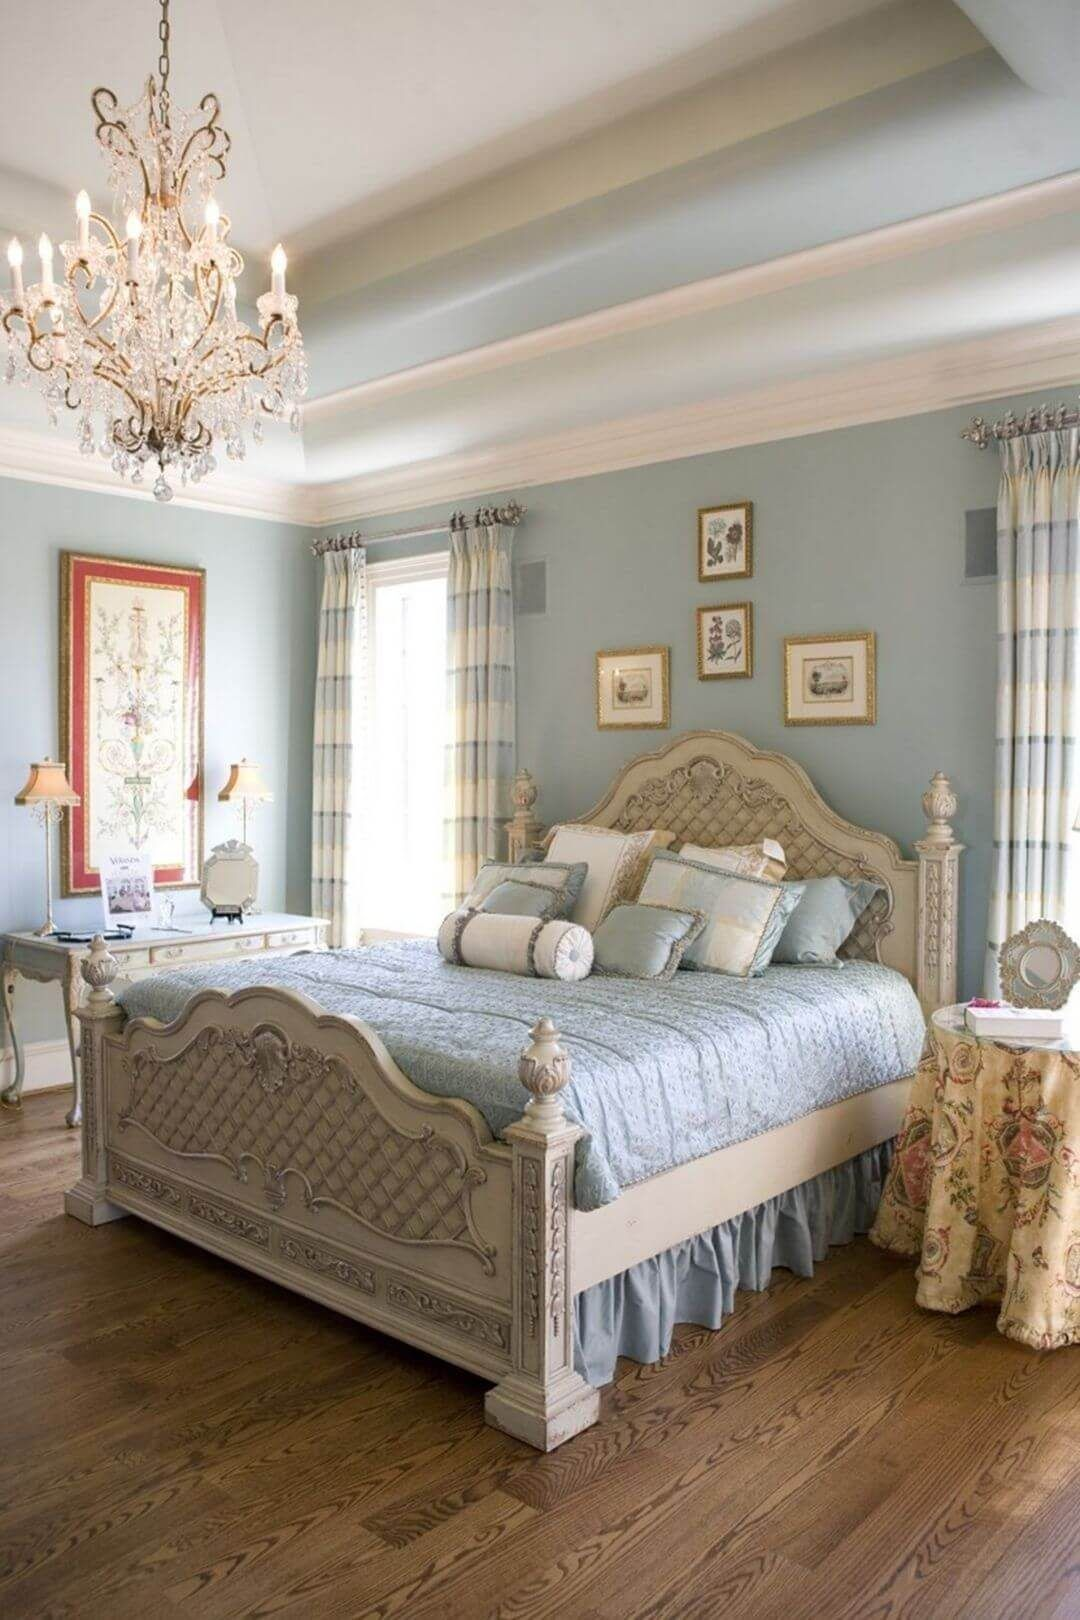 25 Fashionable Shabby Chic Bedroom (All Are Stylish!) - Q8